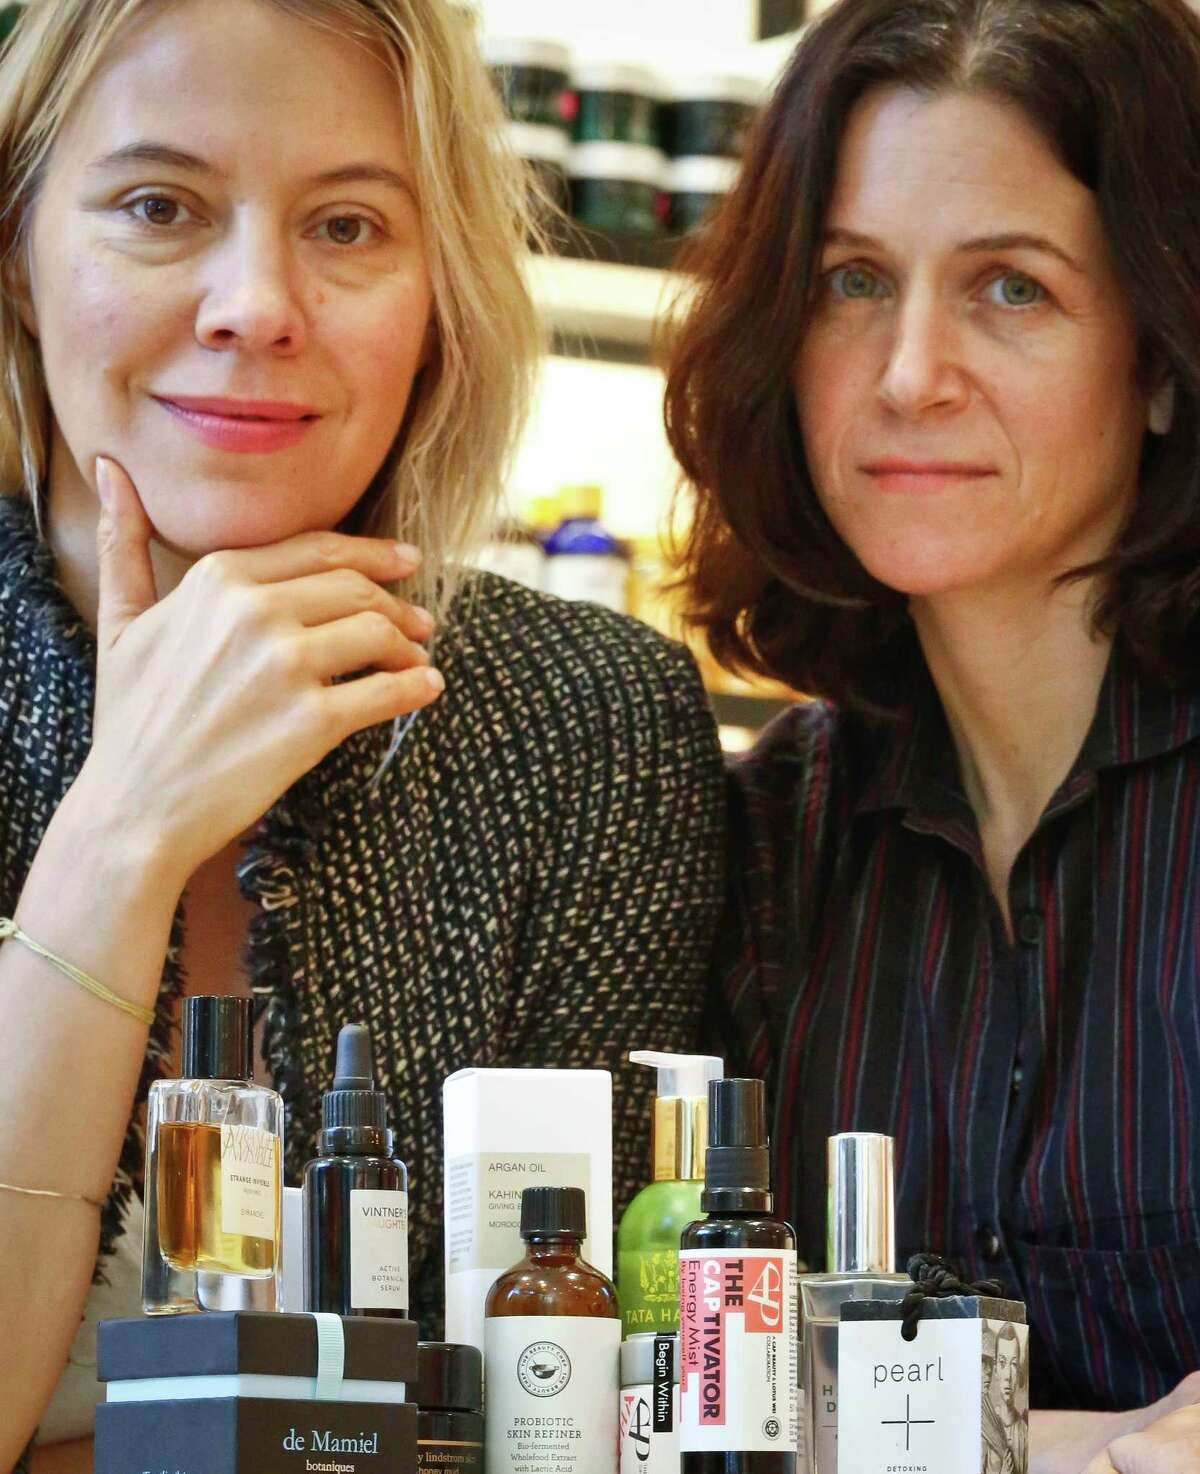 Kerrilynn Pamer, left, and Cindy DiPrima Morisse, owners of CAP Beauty in New York, said 40 percent of the store's top 10 products are ingestible items made of exotic ingredients.